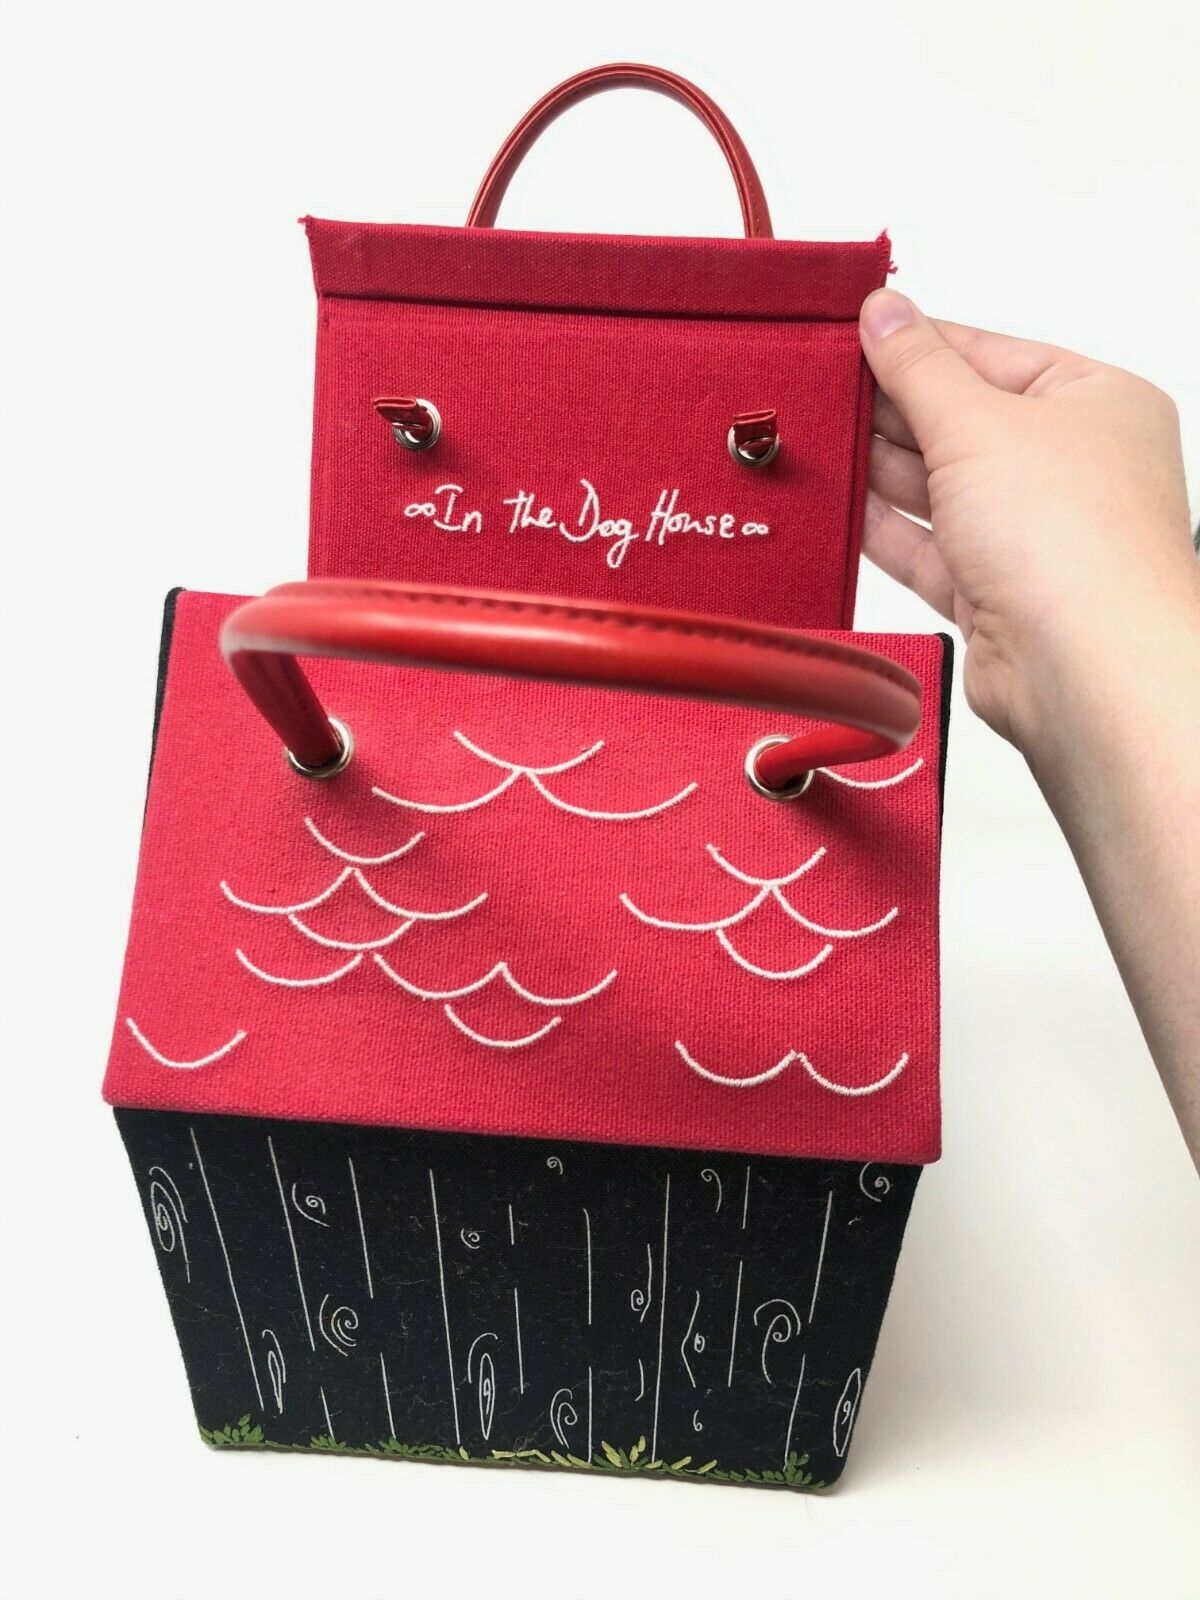 "RARE Lulu Guinness Bag Dog House Purse ""Beware of… - image 6"